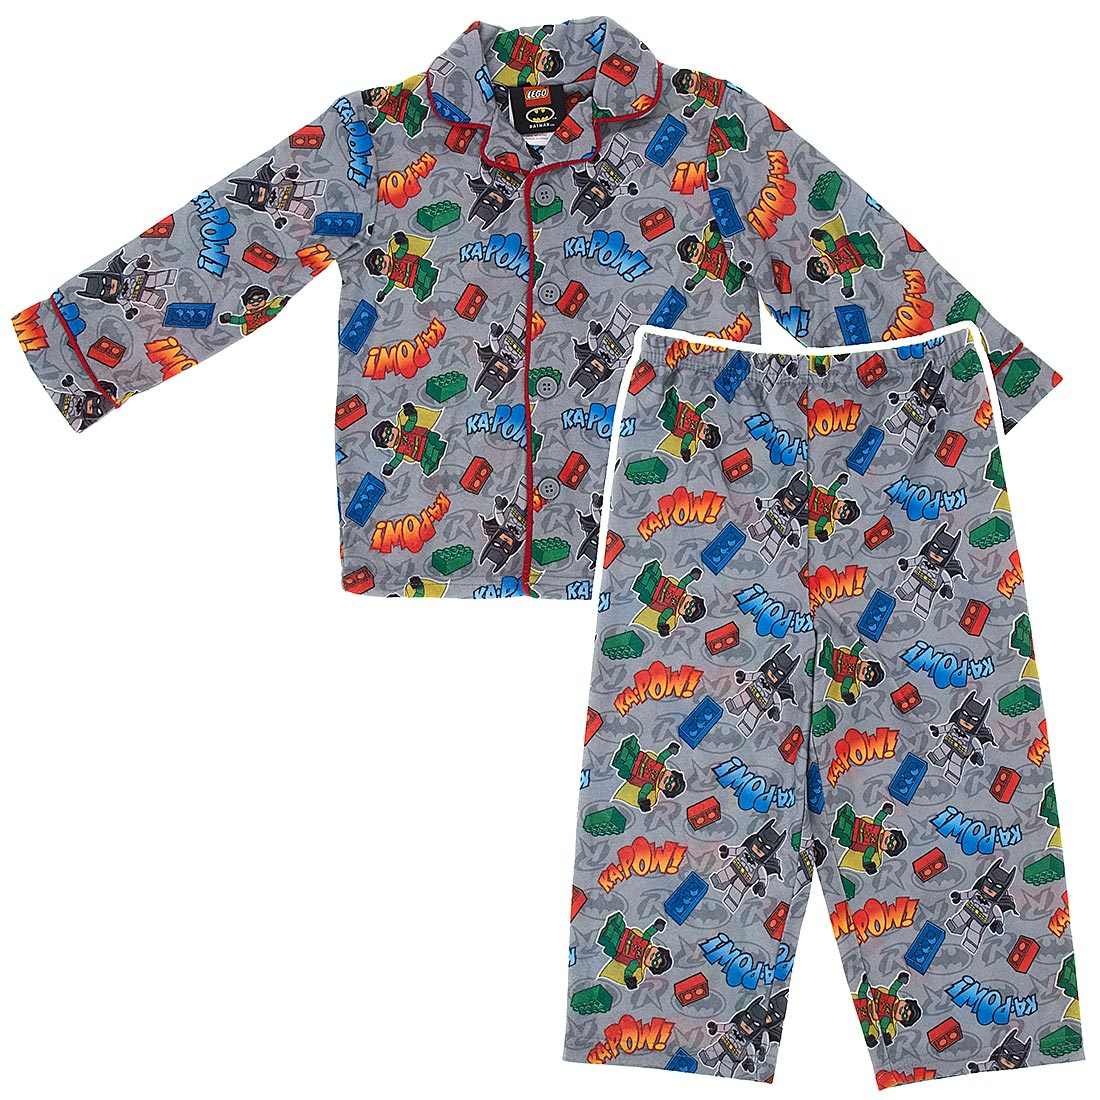 Pictures of wikiclipart . Pajamas clipart flannel